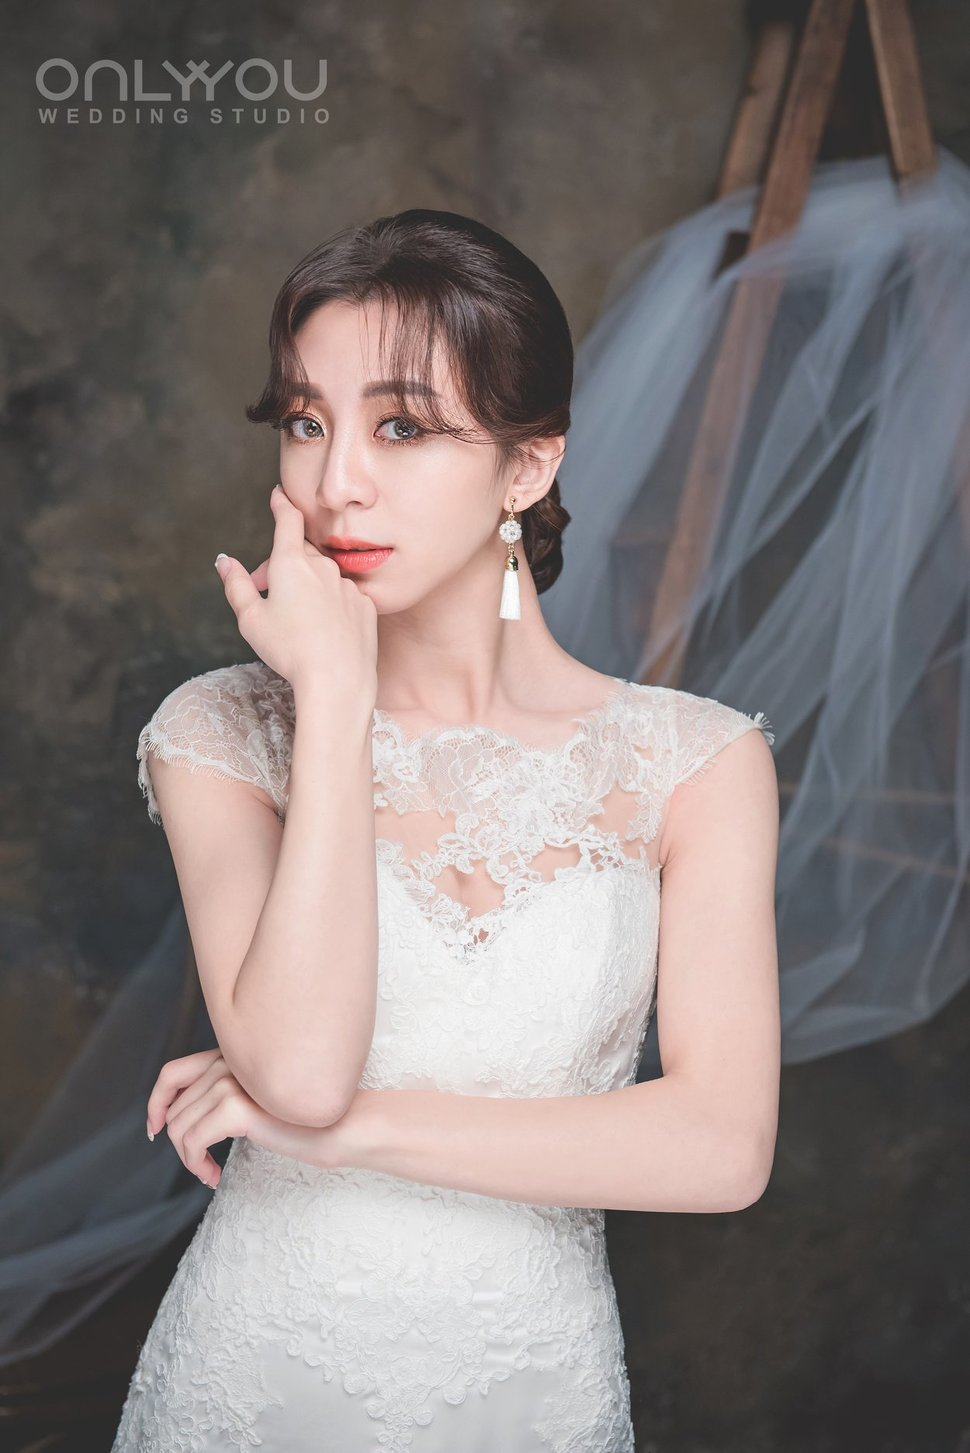 67524498_2317667124955587_5988880450259517440_o - ONLY YOU 唯你婚紗攝影《結婚吧》